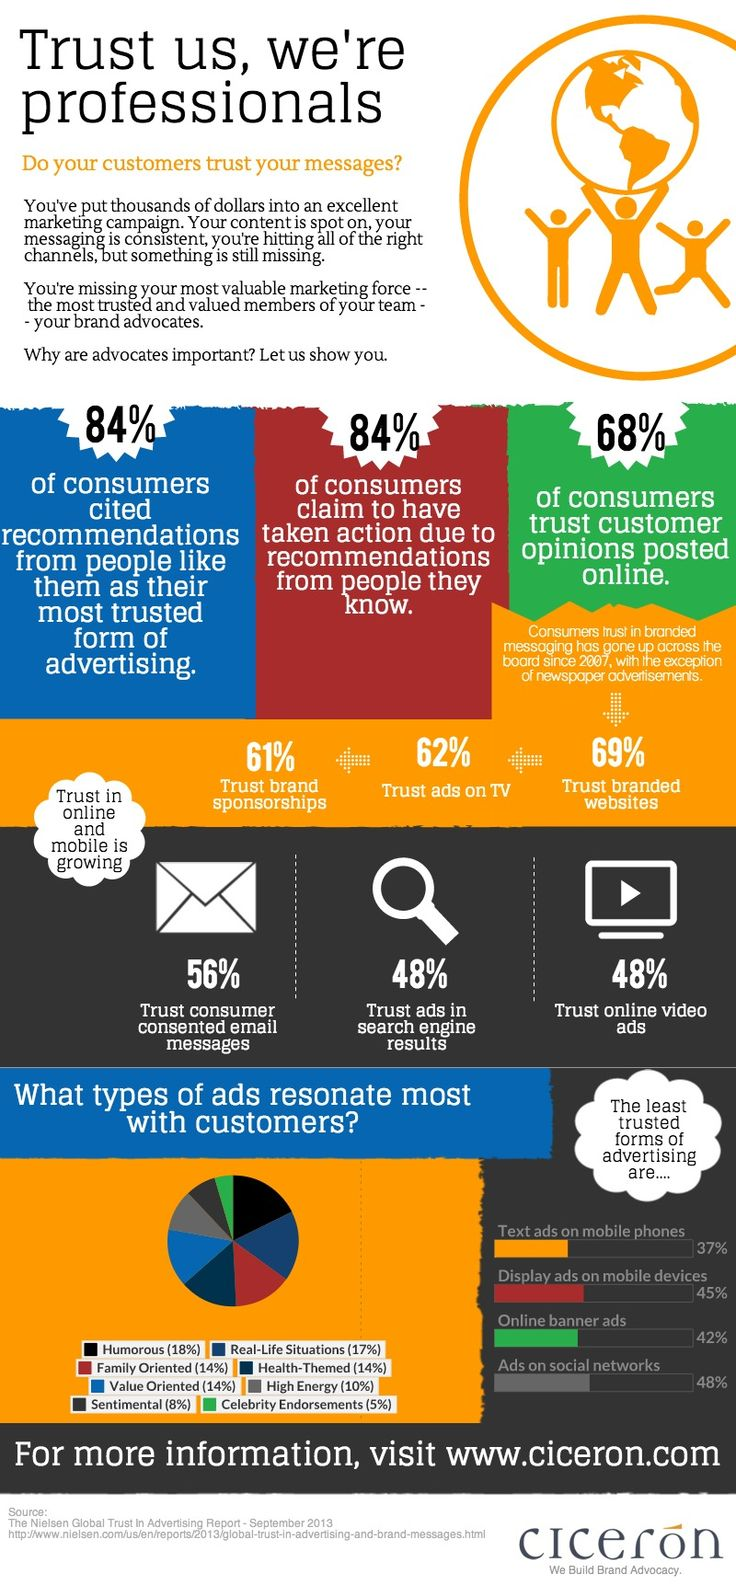 Less Than Half Of Customers Trust Ads On Social Networks [INFOGRAPHIC] - AllTwitter